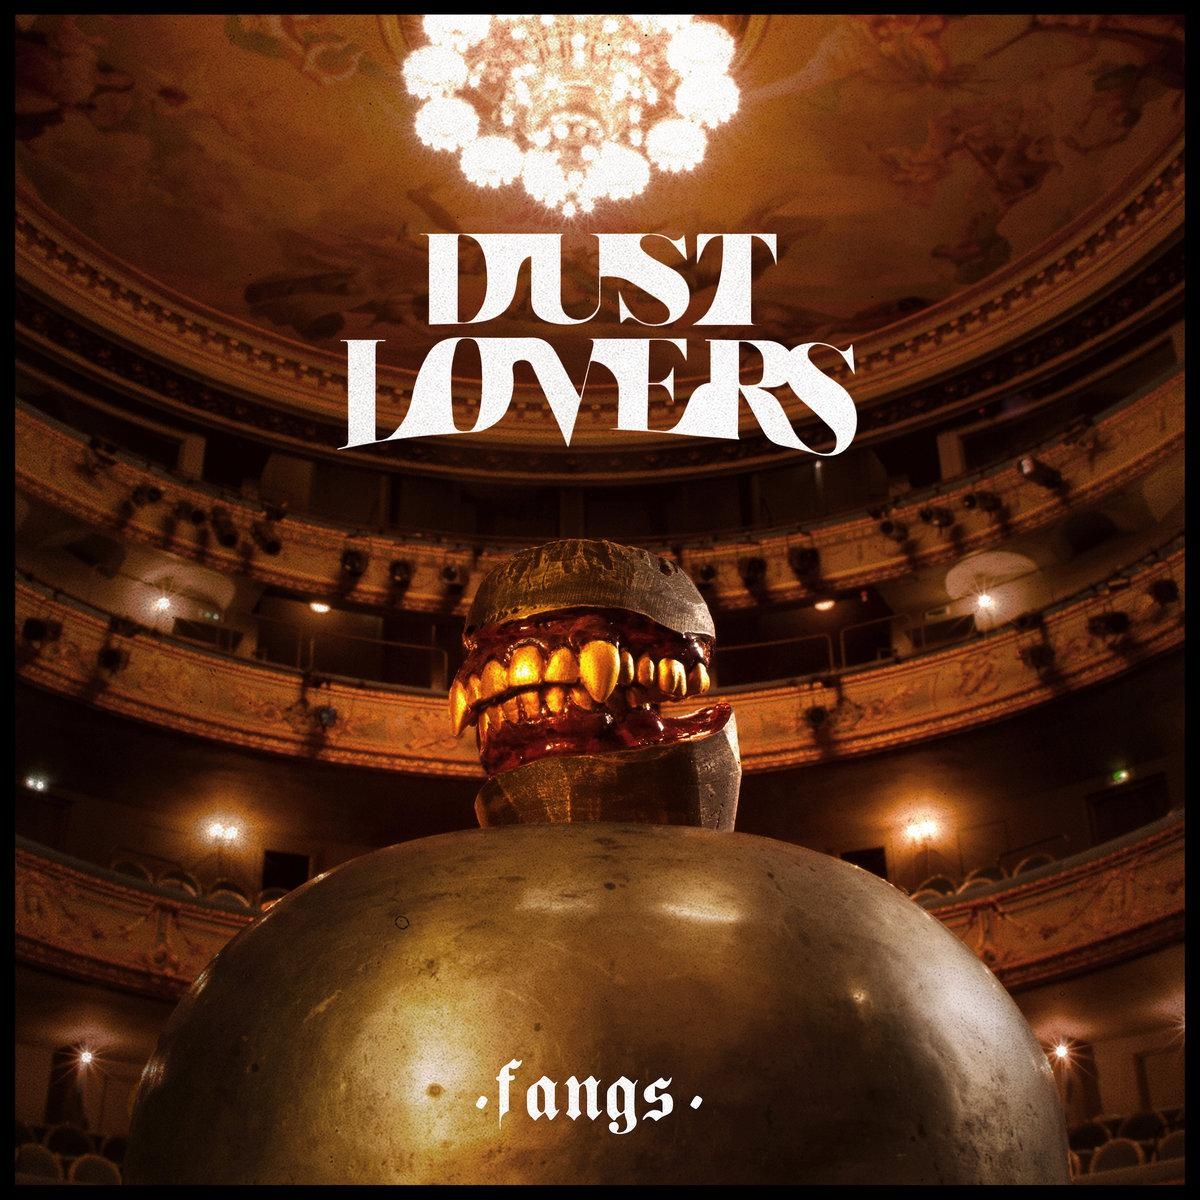 Chronique d'album : DUST LOVERS (Rock) Fangs (2020)